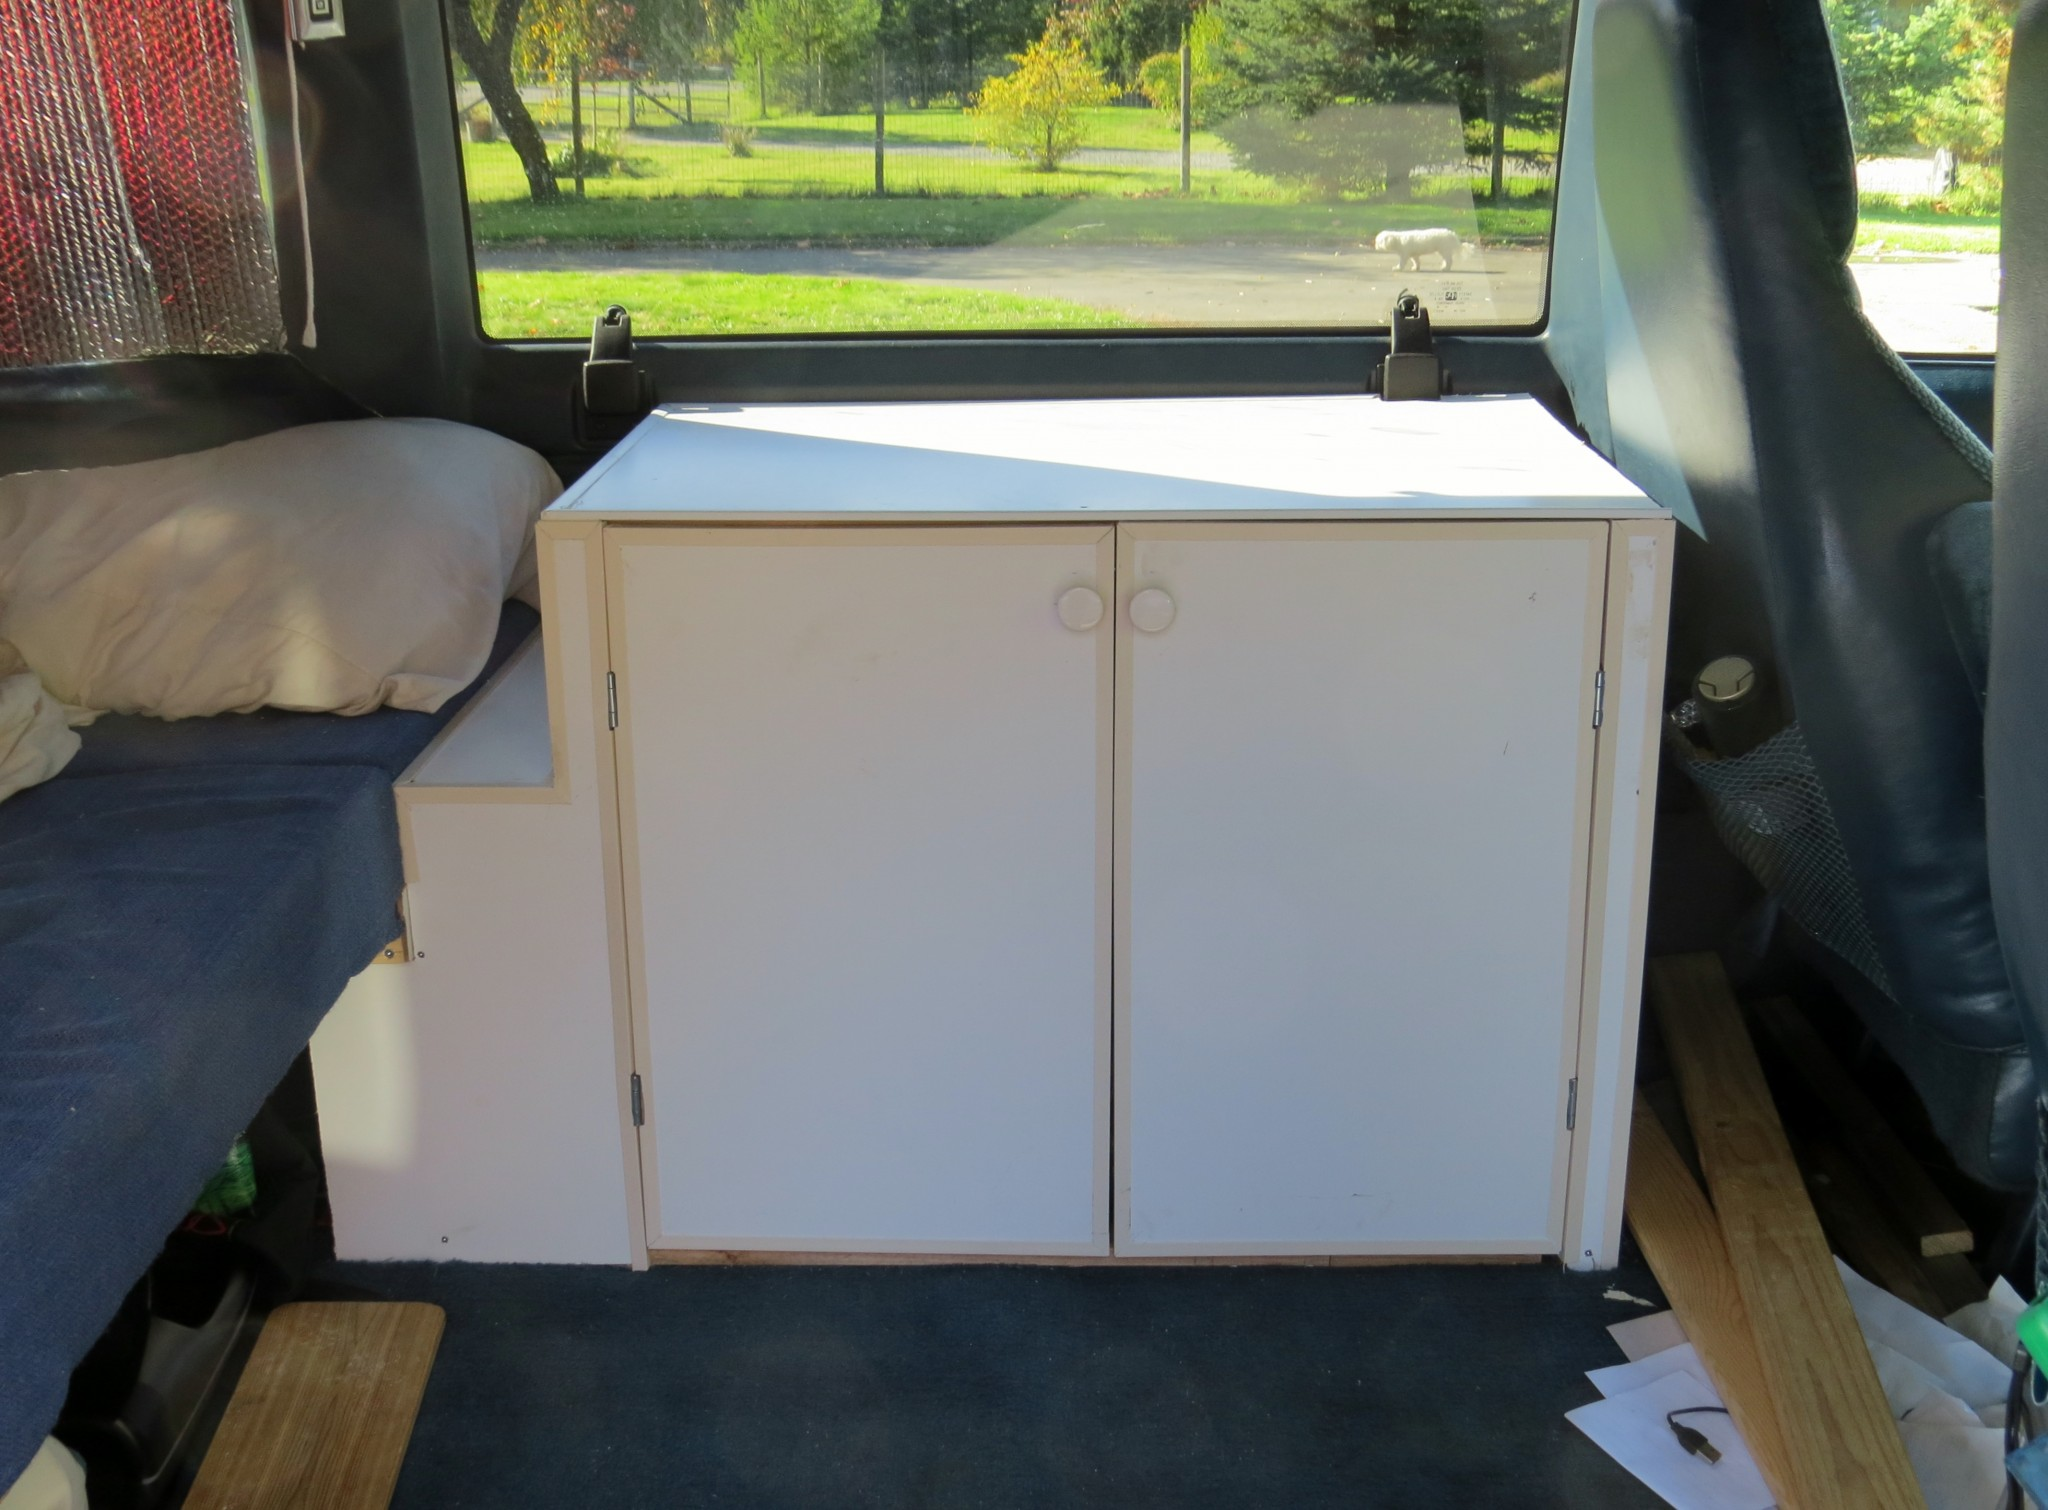 Astro van conversion cabinet finished